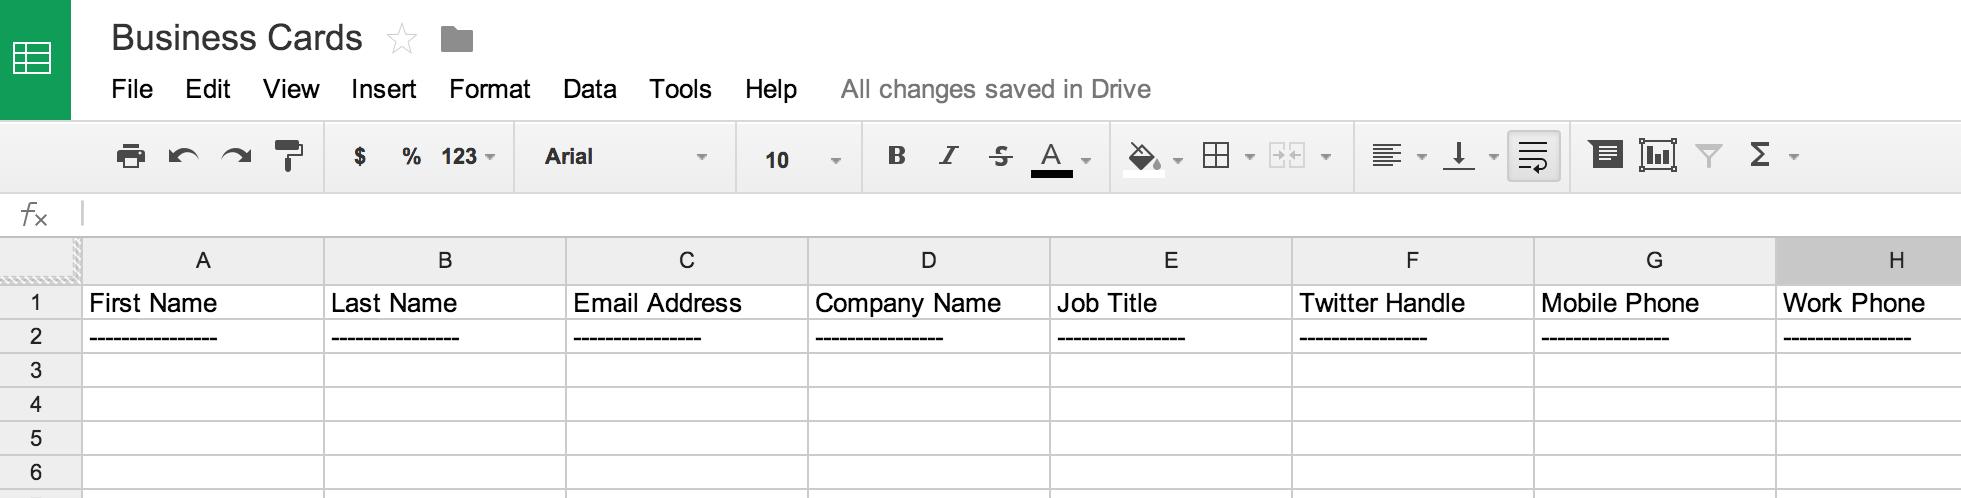 Scan Business Cards Into Excel Spreadsheet Throughout How To Scan Business Cards Into A Spreadsheet